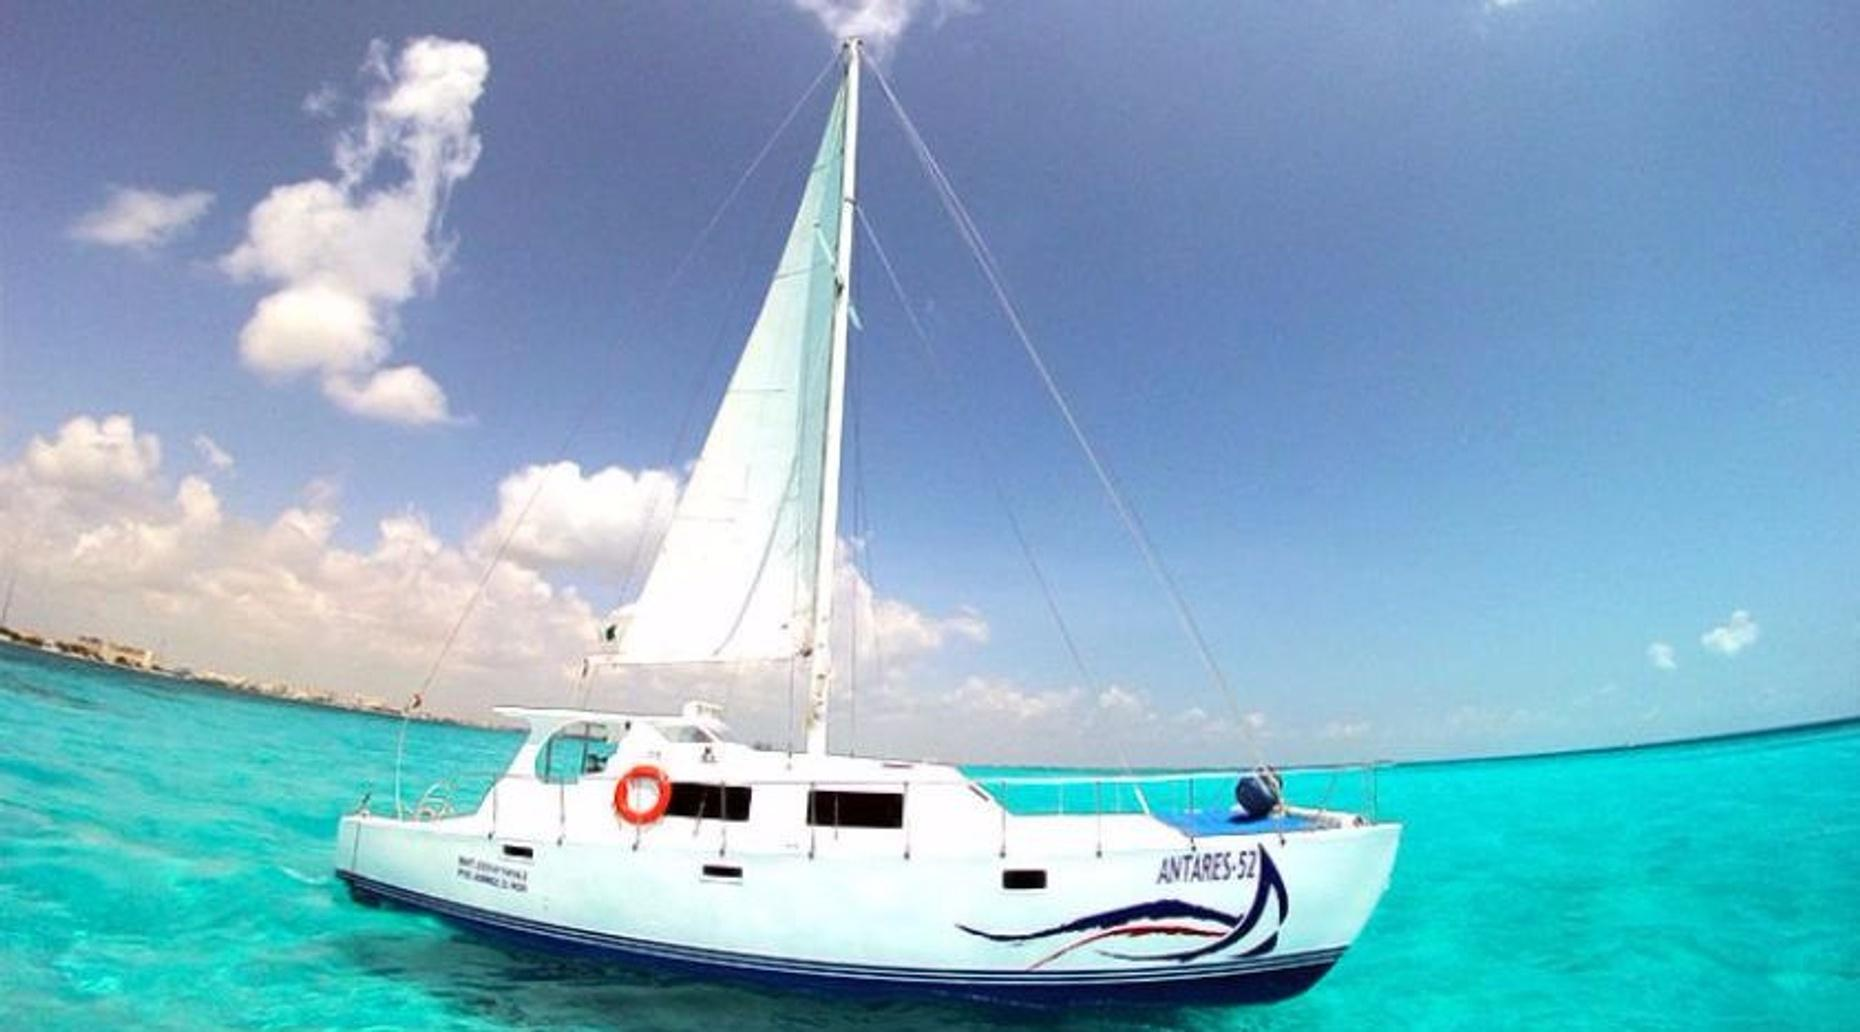 Half-Day Sailing Trip on the Antares 52 to Isla Mujeres